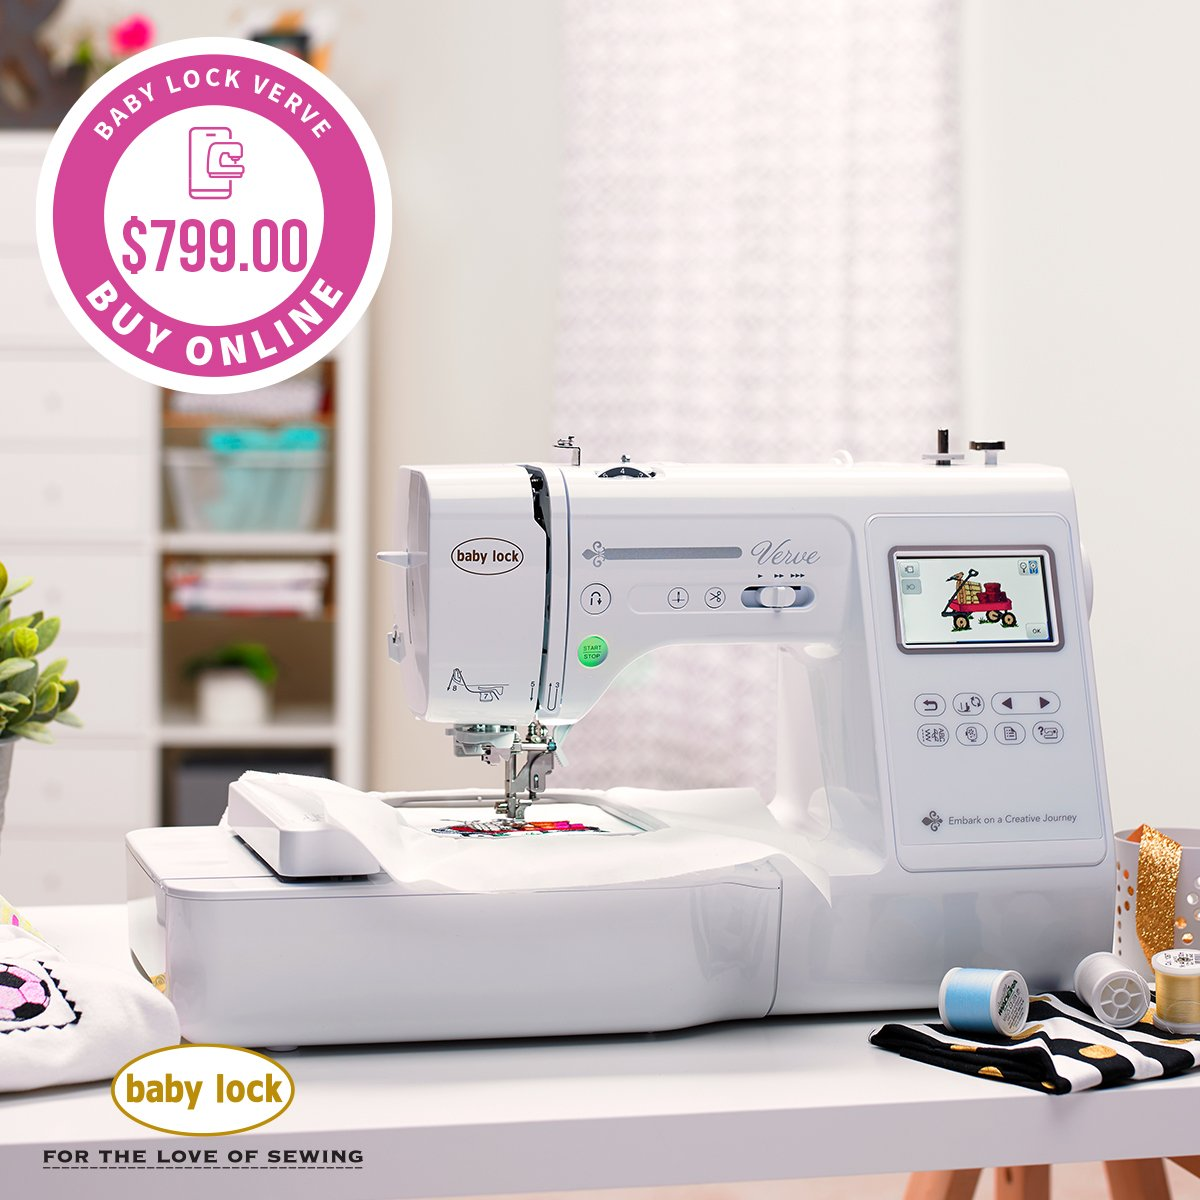 VERVE Sewing/Embroidery includes shipping